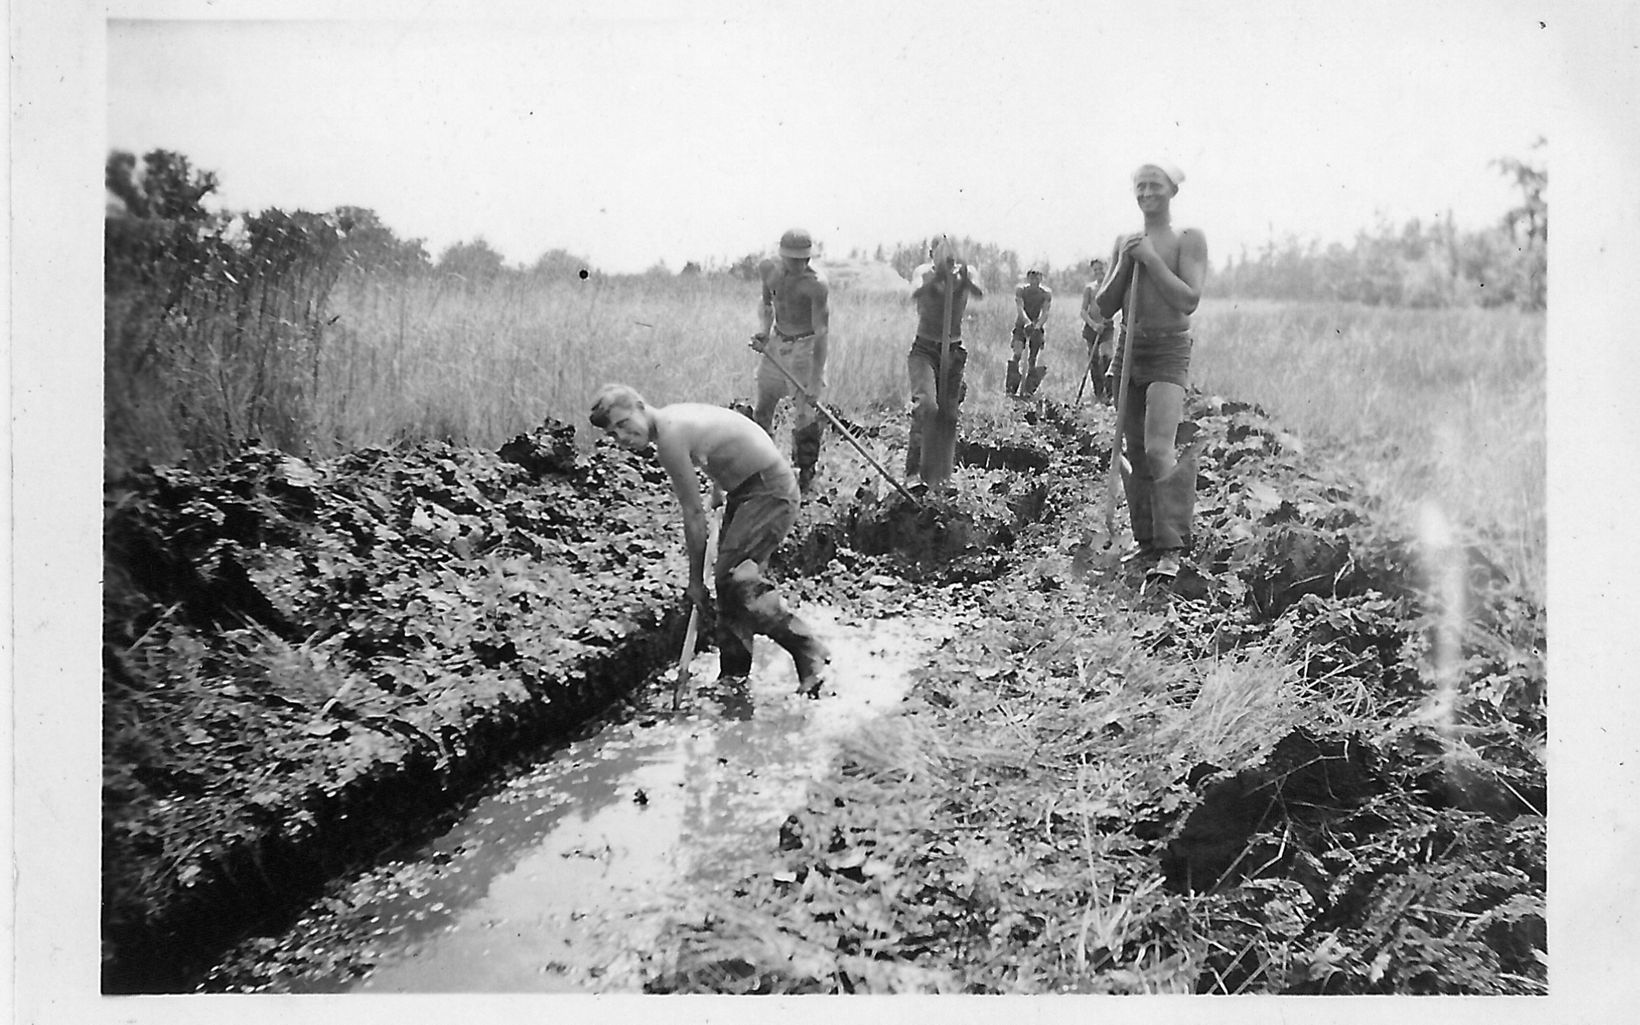 Civilian Conservation Corps members dig ditches along the Delmarva Peninsula August 1935.